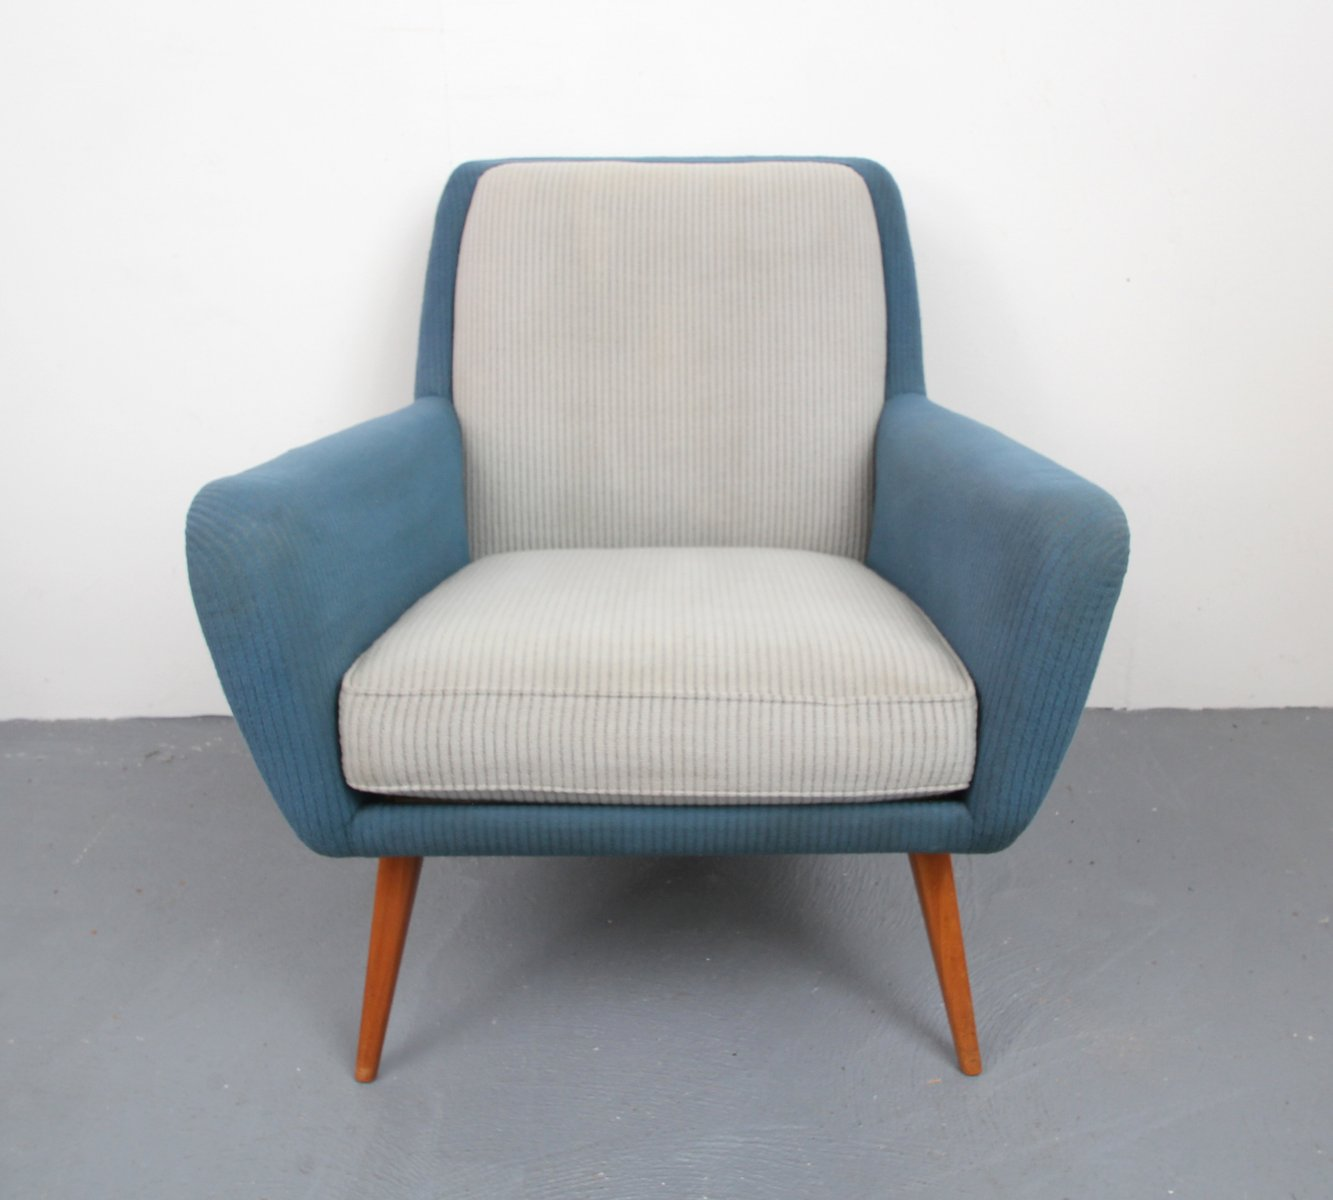 Armchair in pigeon blue light gray 1950s for sale at pamono for Light blue armchair